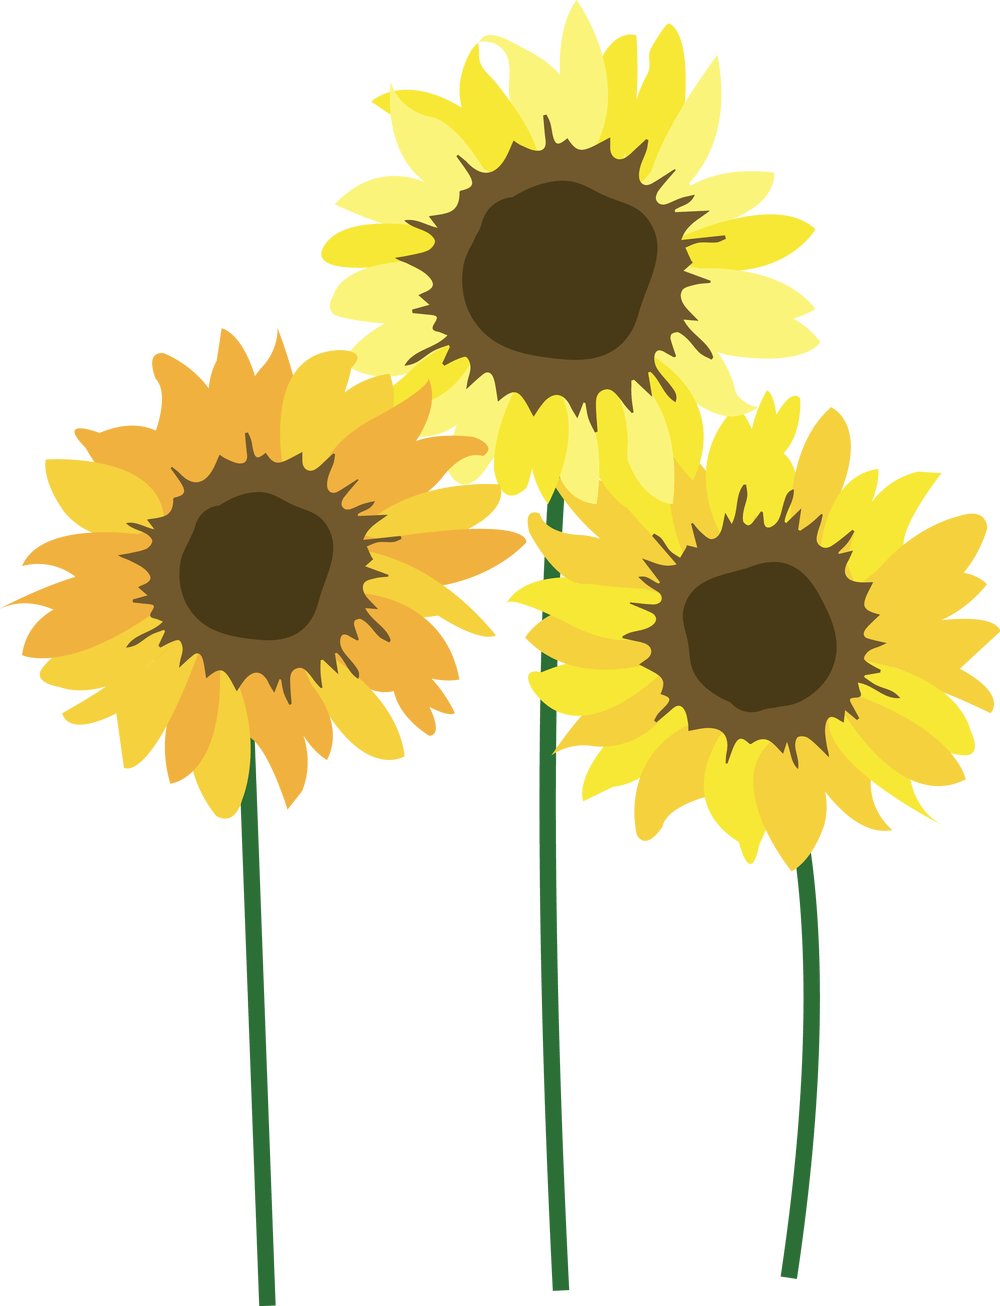 Sunflower festival . Field clipart sunflowers